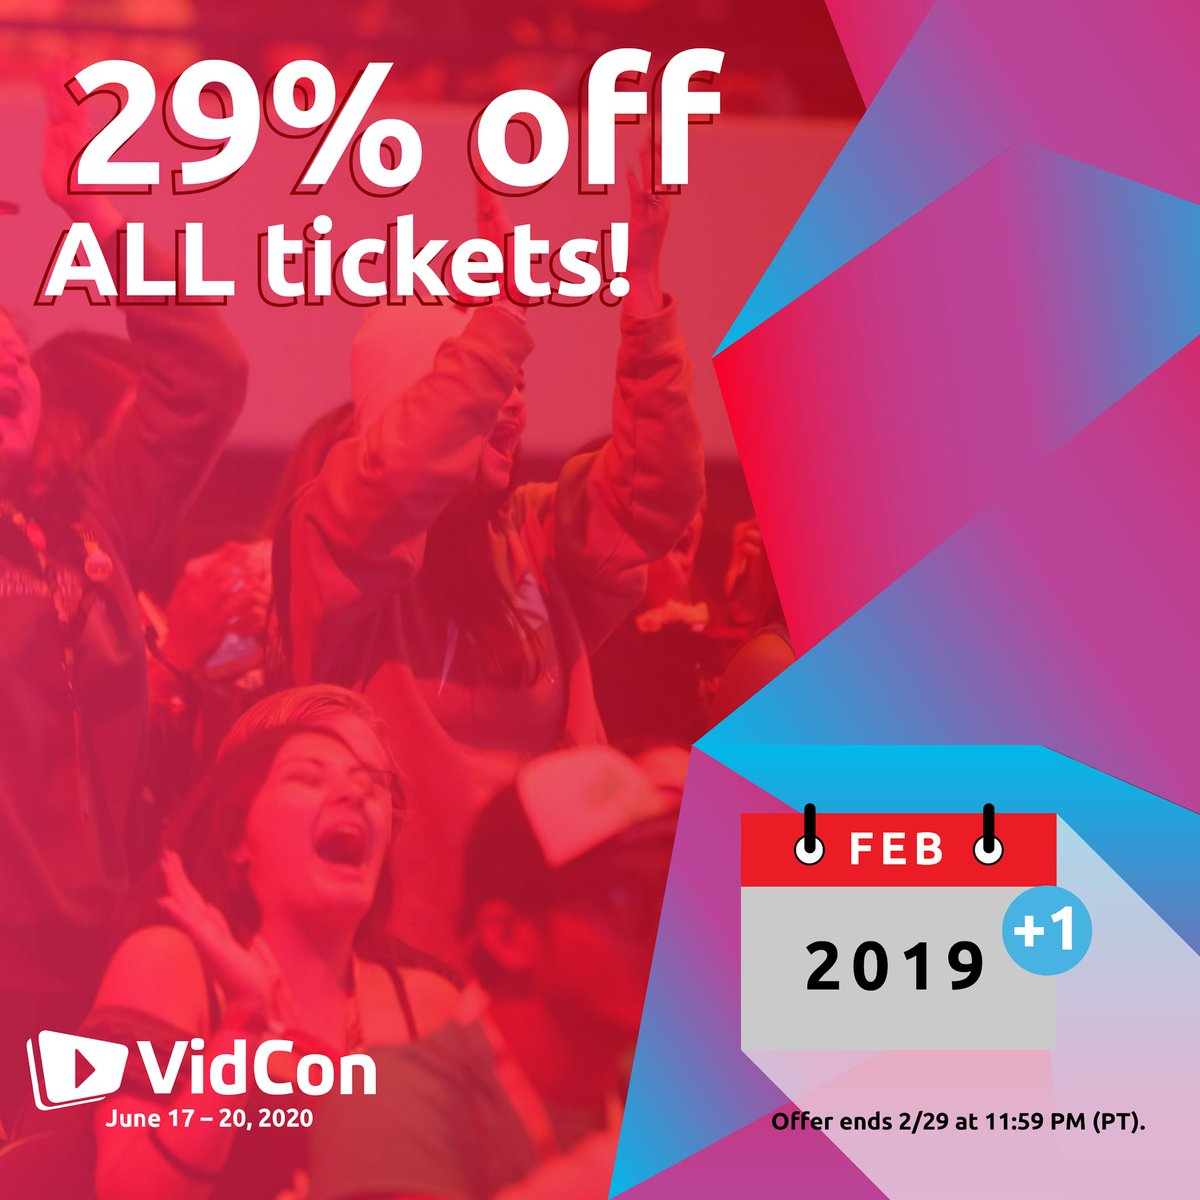 An extra day in 2020 calls for an extra big discount on #VidConUS tickets! Use code LEAPYEAR29 for our lowest prices ever!